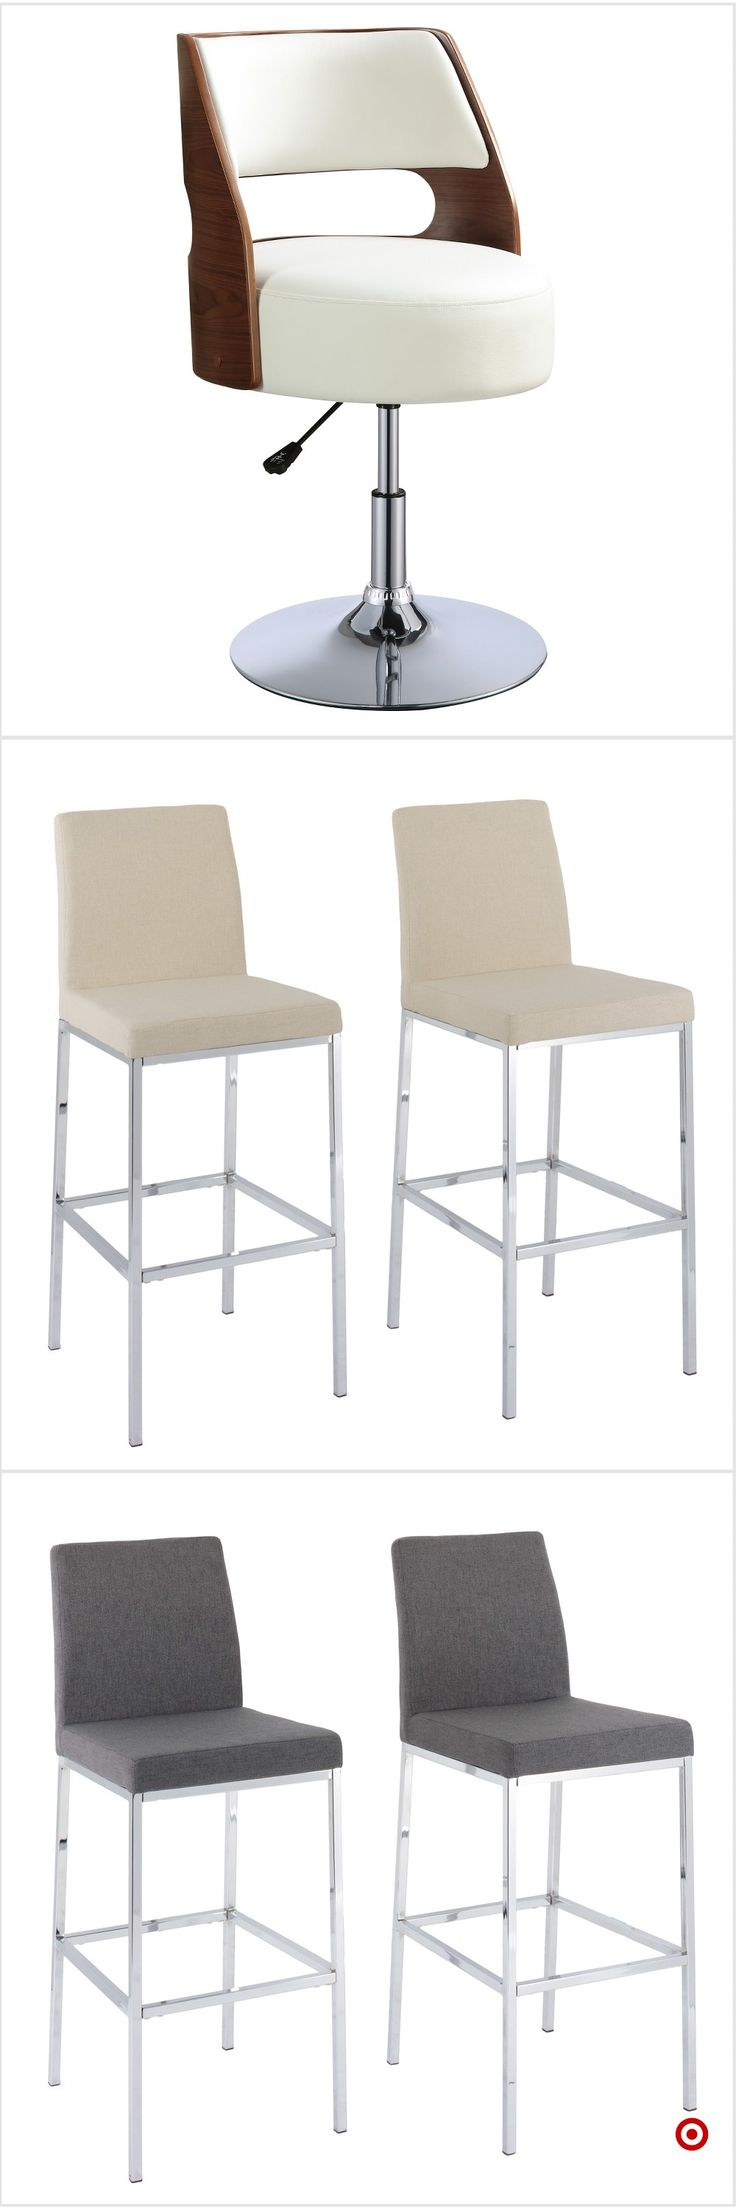 Target For Counter And Bar Stools You Will Love At Great Low Prices Free